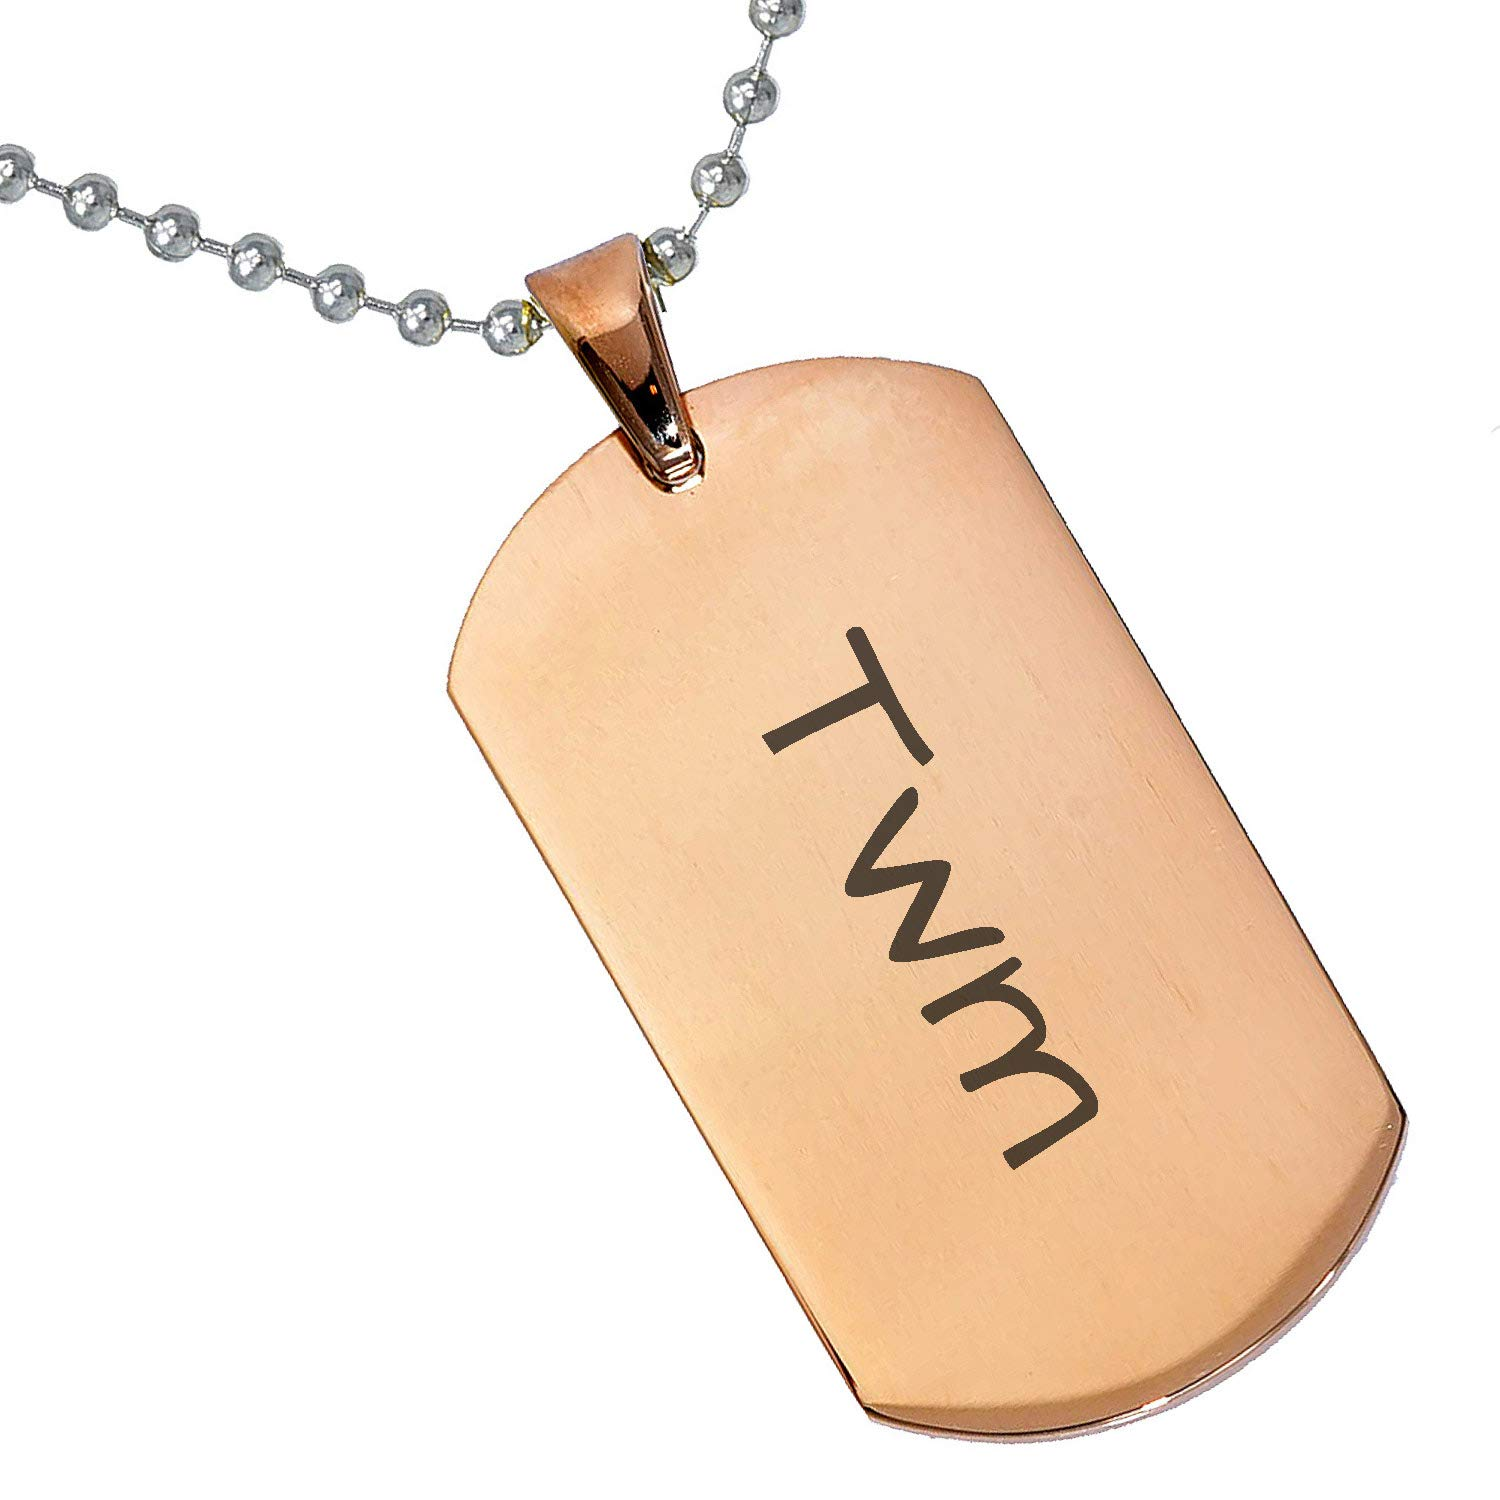 Stainless Steel Silver Gold Black Rose Gold Color Baby Name Twm Engraved Personalized Gifts For Son Daughter Boyfriend Girlfriend Initial Customizable Pendant Necklace Dog Tags 24 Ball Chain